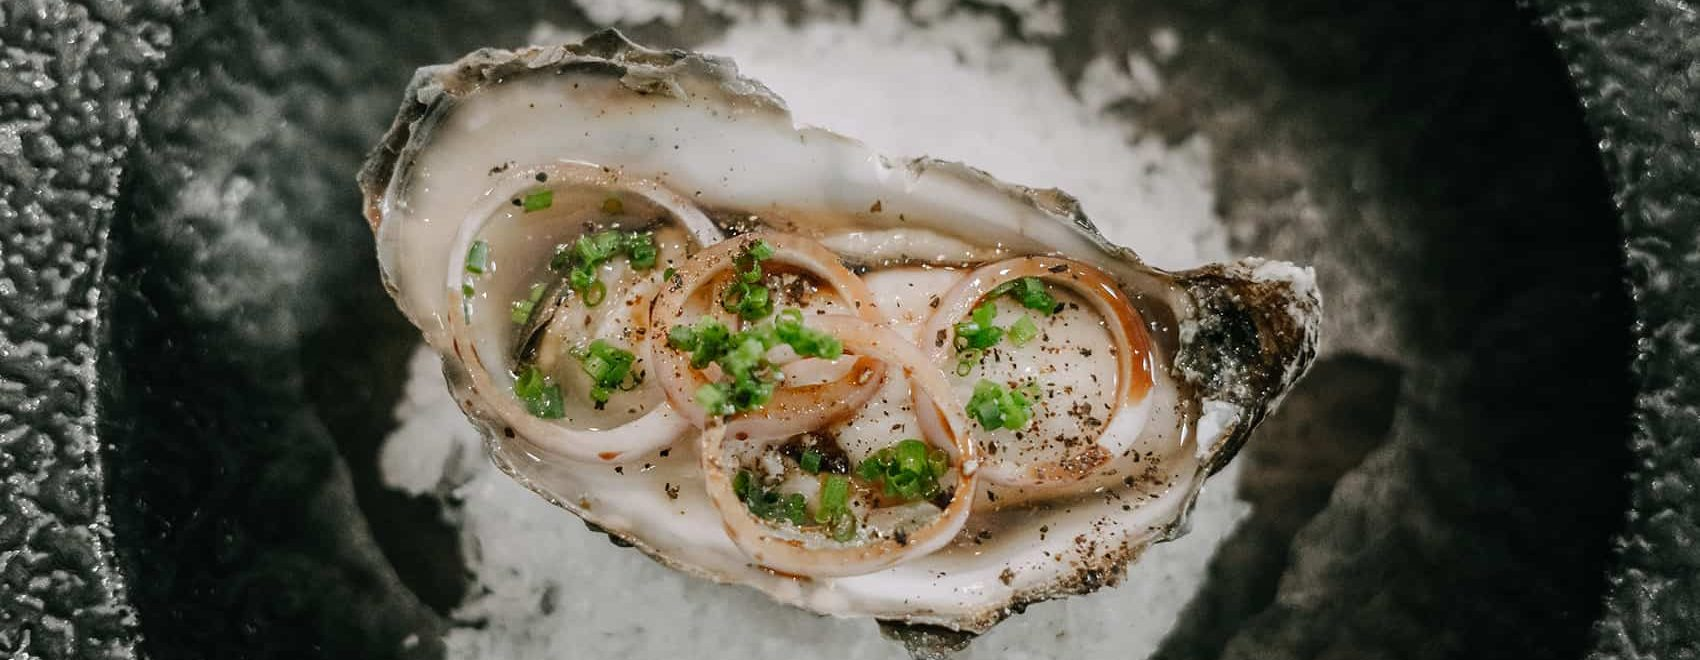 Loch fyne Oyster(sweet, plump & juicy)-shallot, chive & black pepper- aged sherry wine vinegar